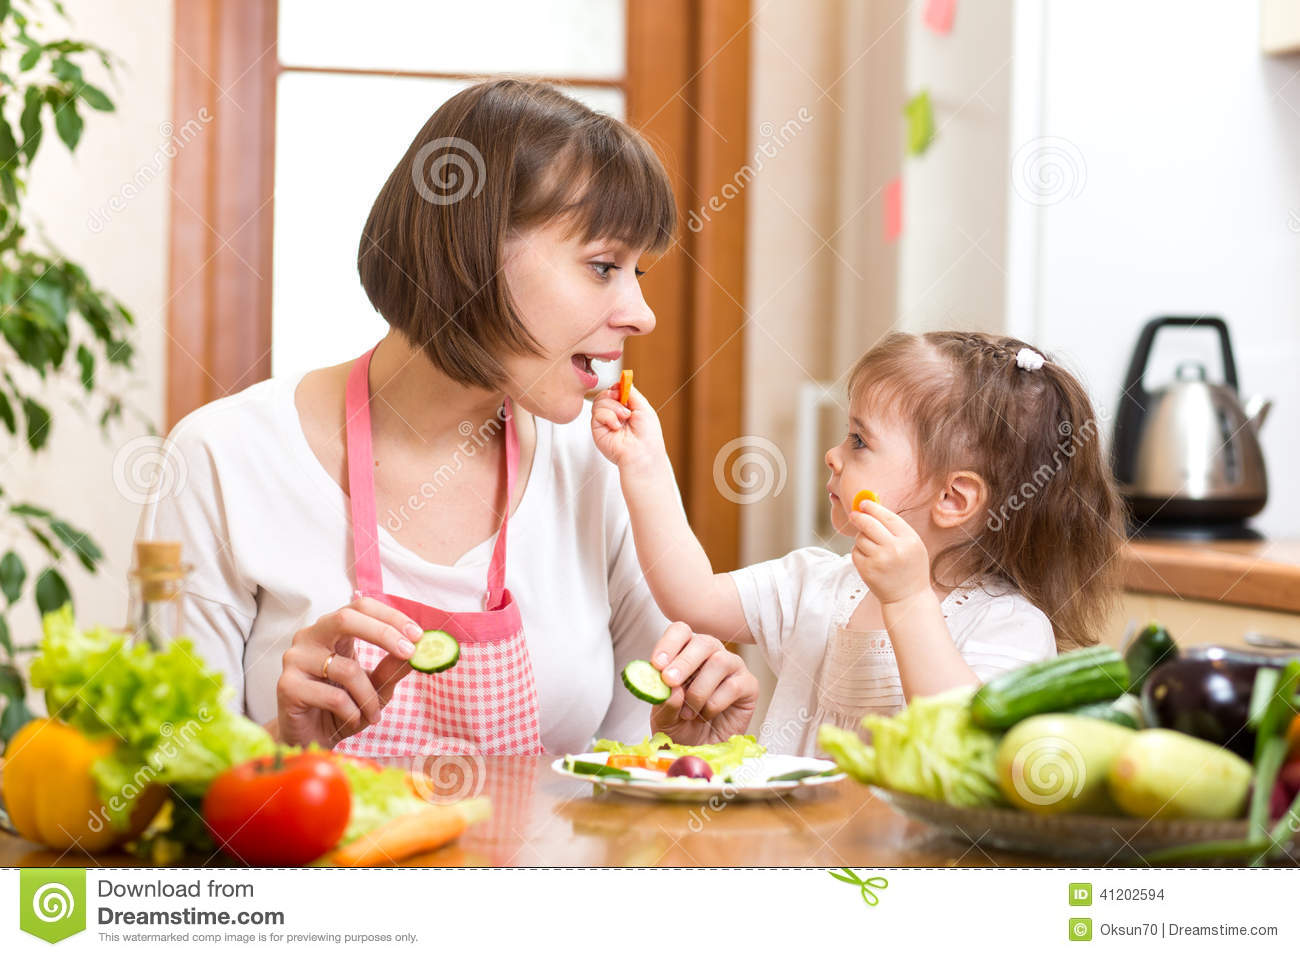 Kid Daughter Feeding Mother Vegetables In Kitchen Stock Photo Image 41202594